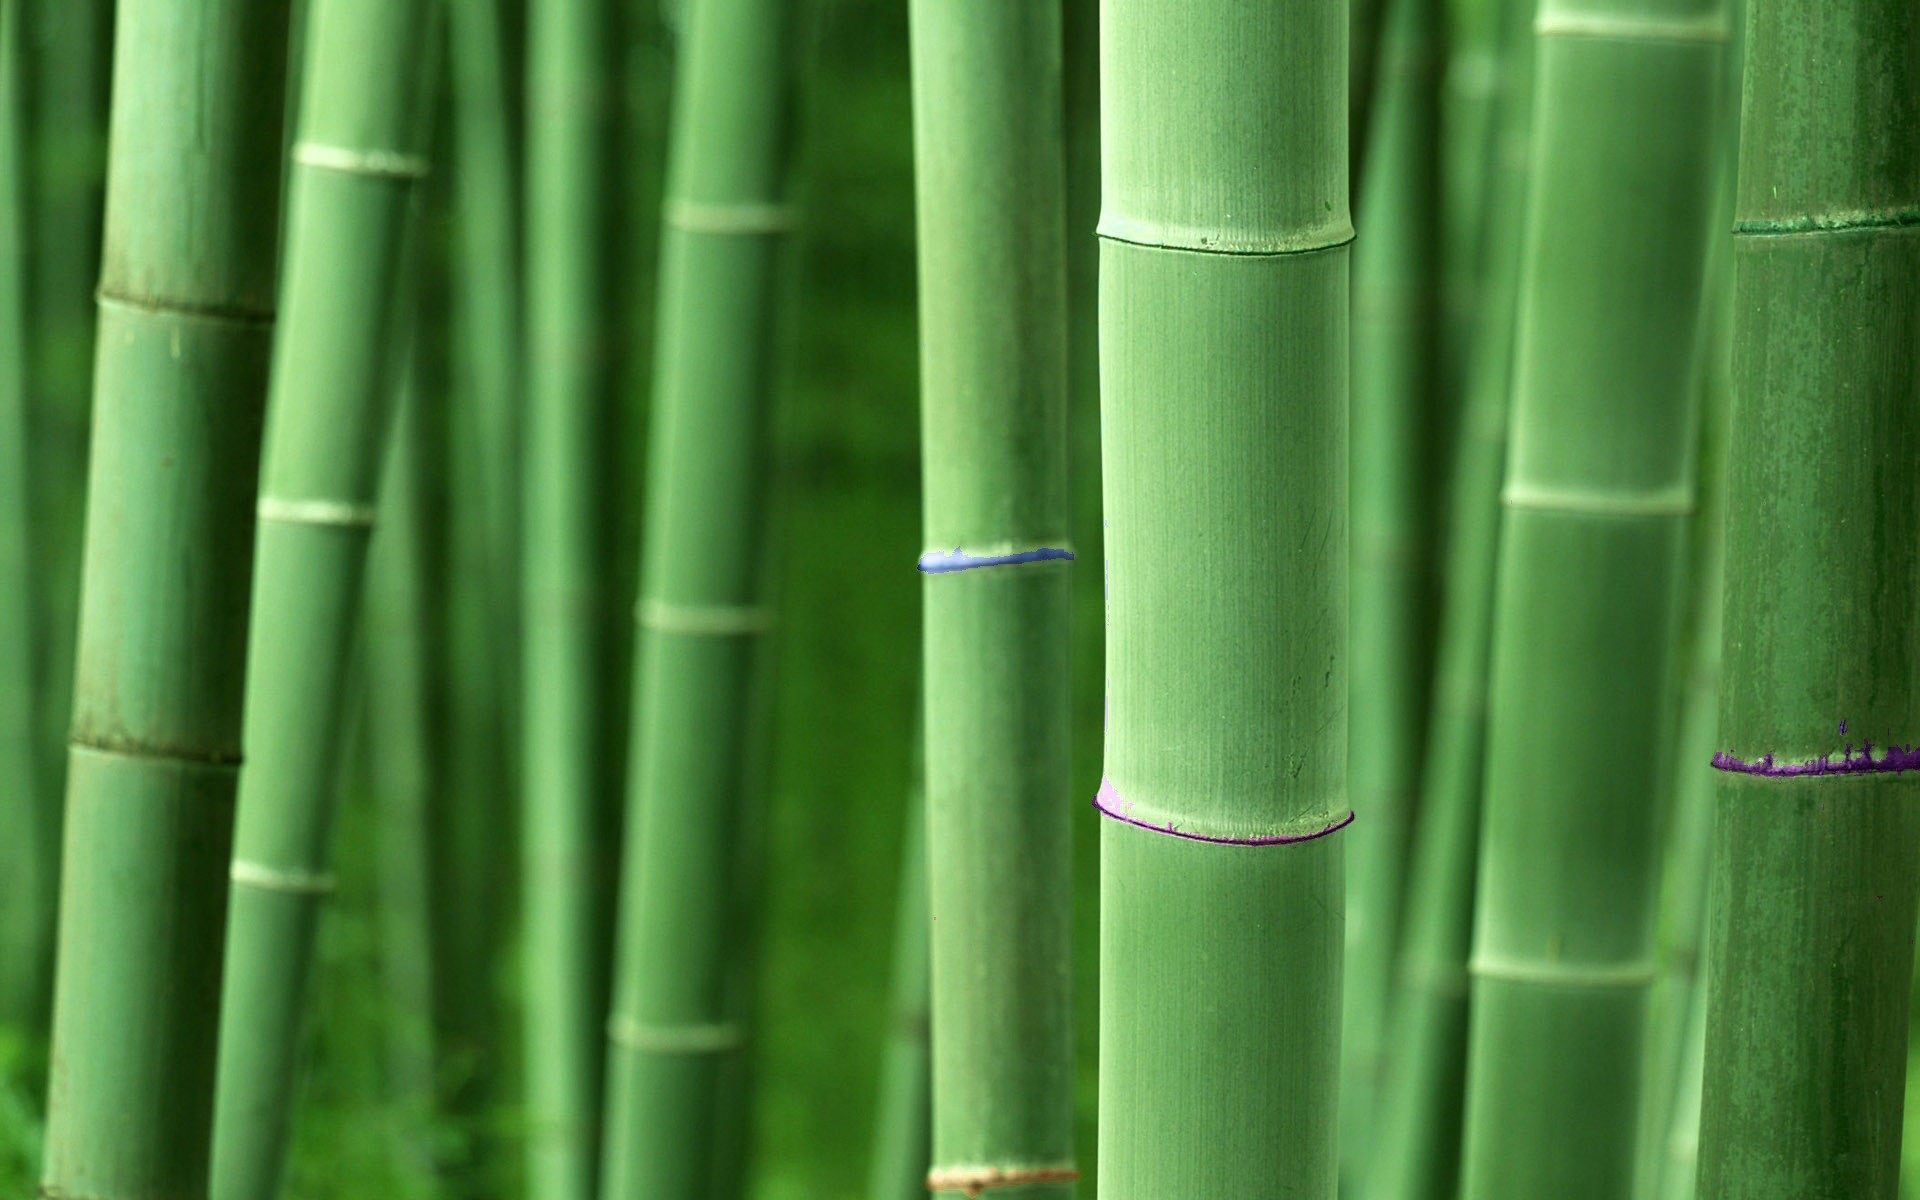 1920x1200 Earth - Bamboo Wallpaper